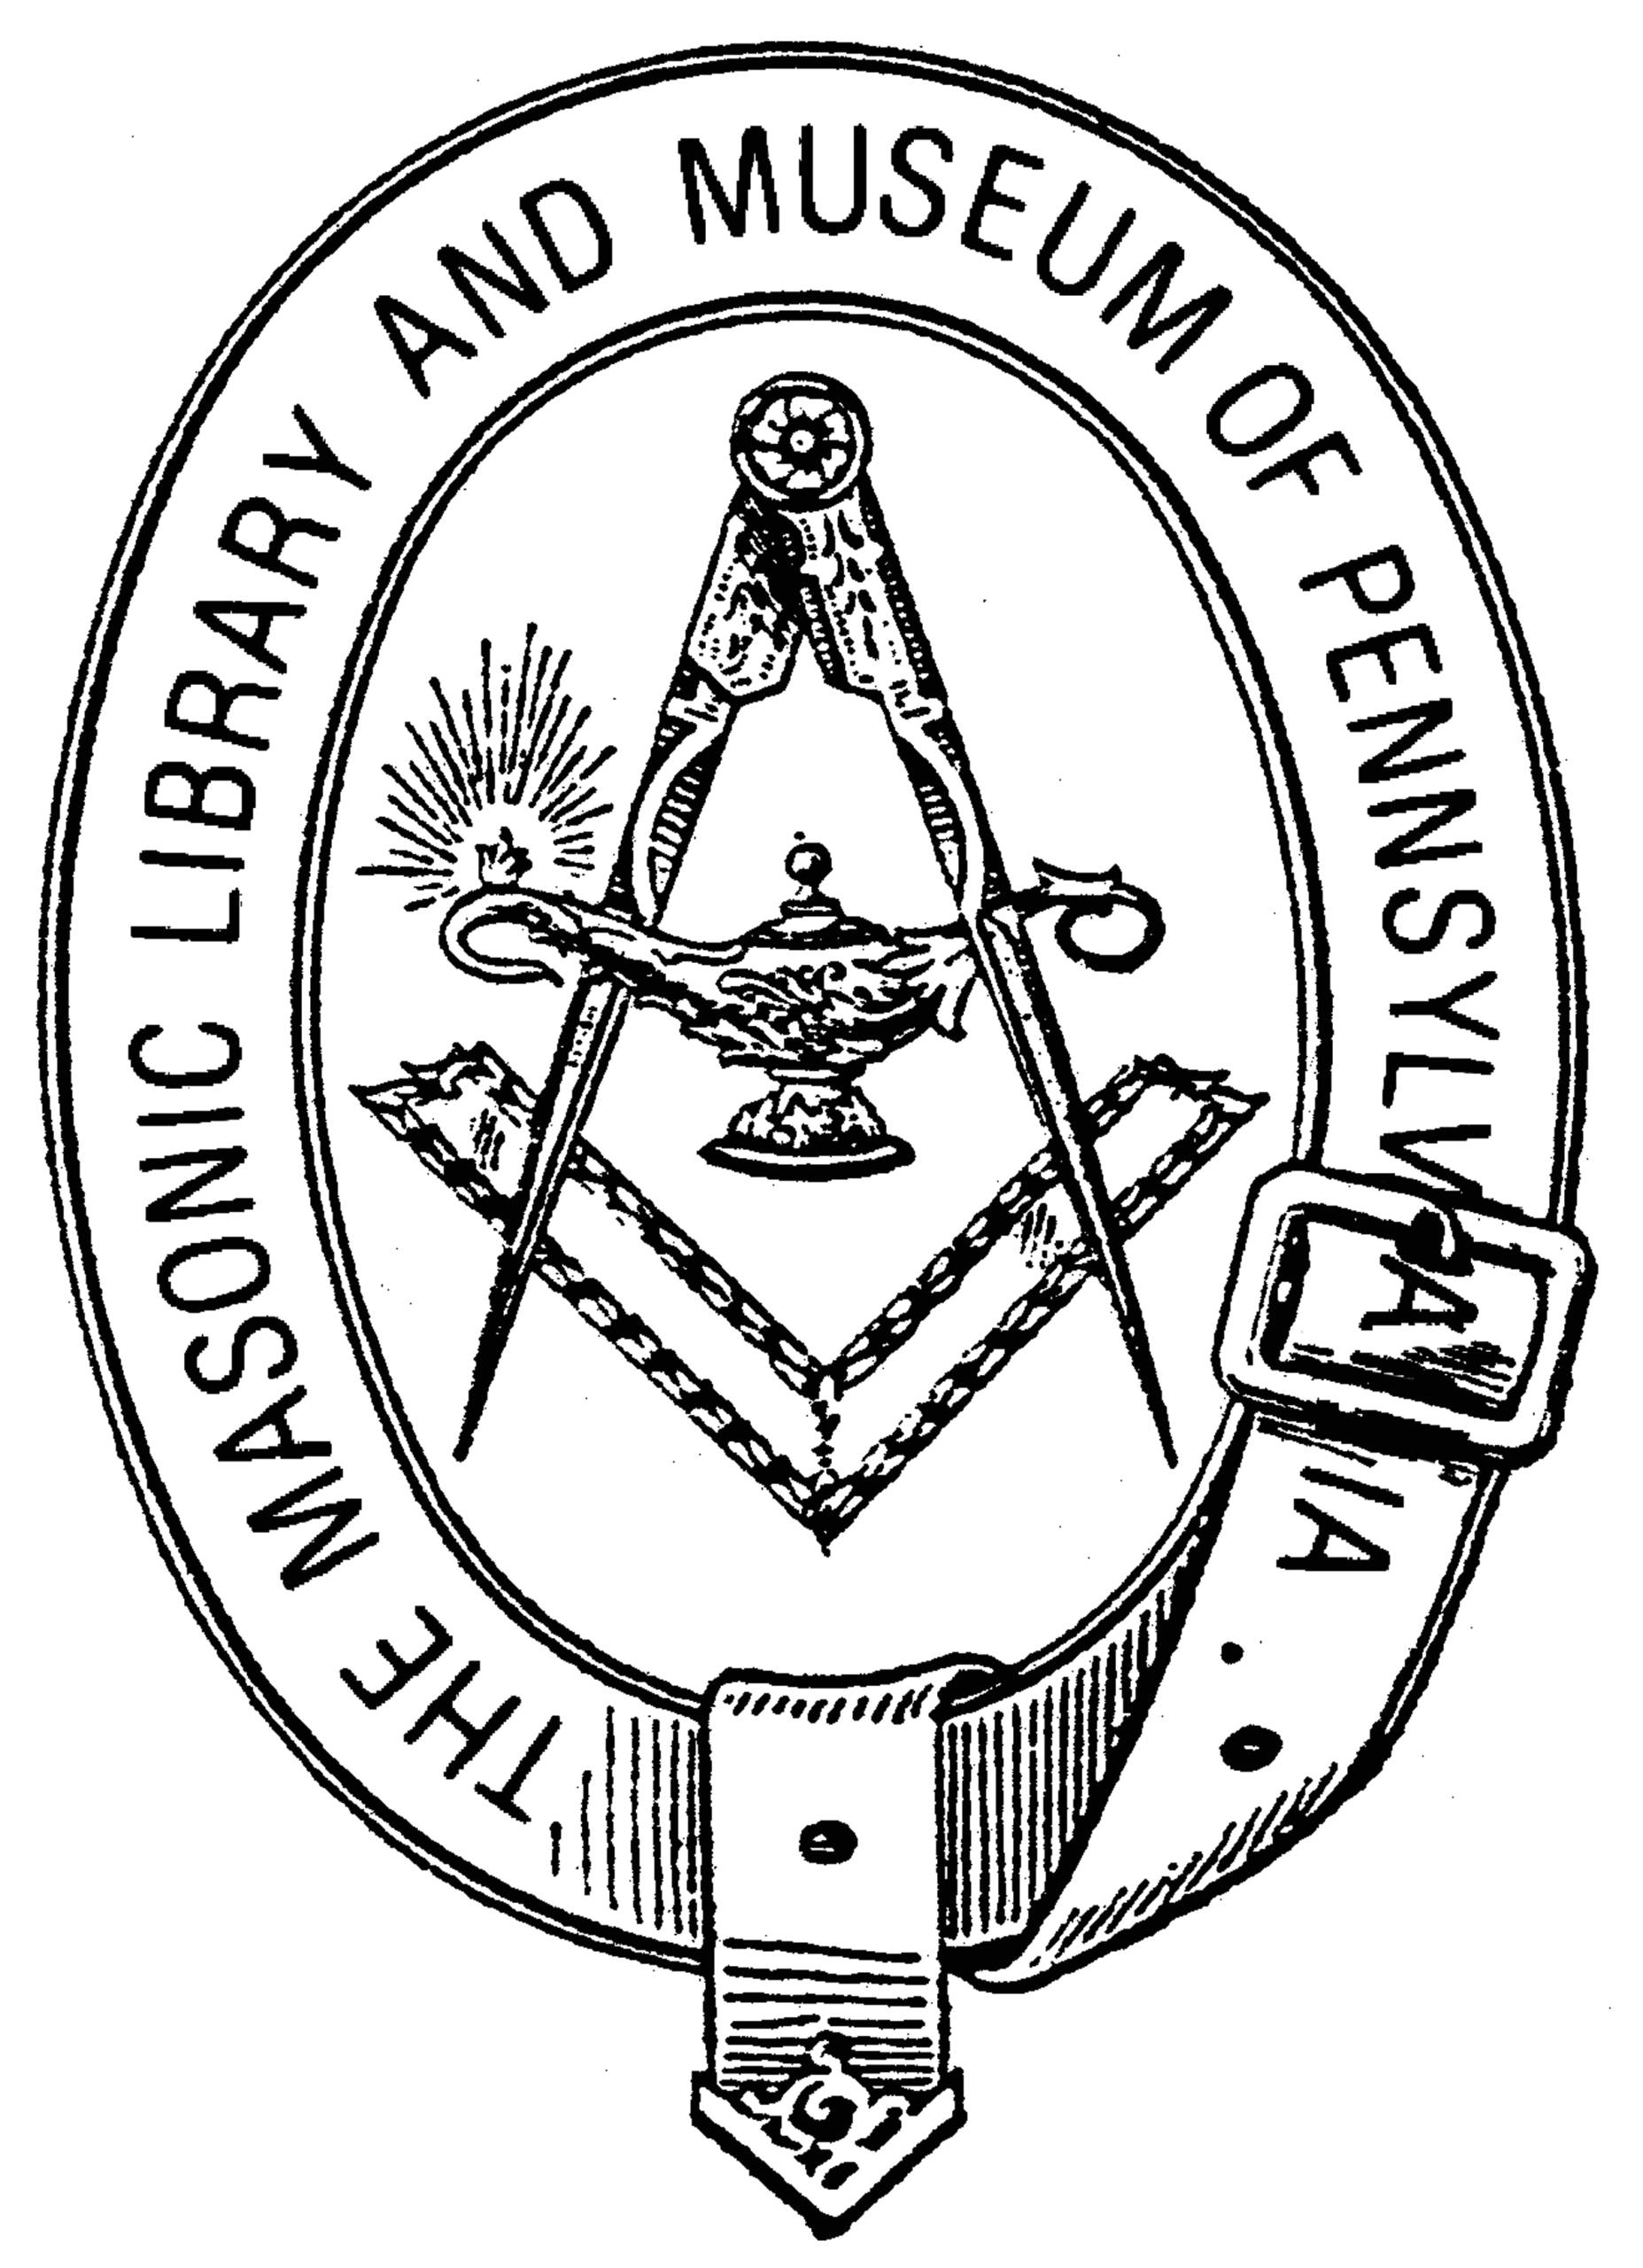 The Masonic Library and Museum of Pennsylvania logo